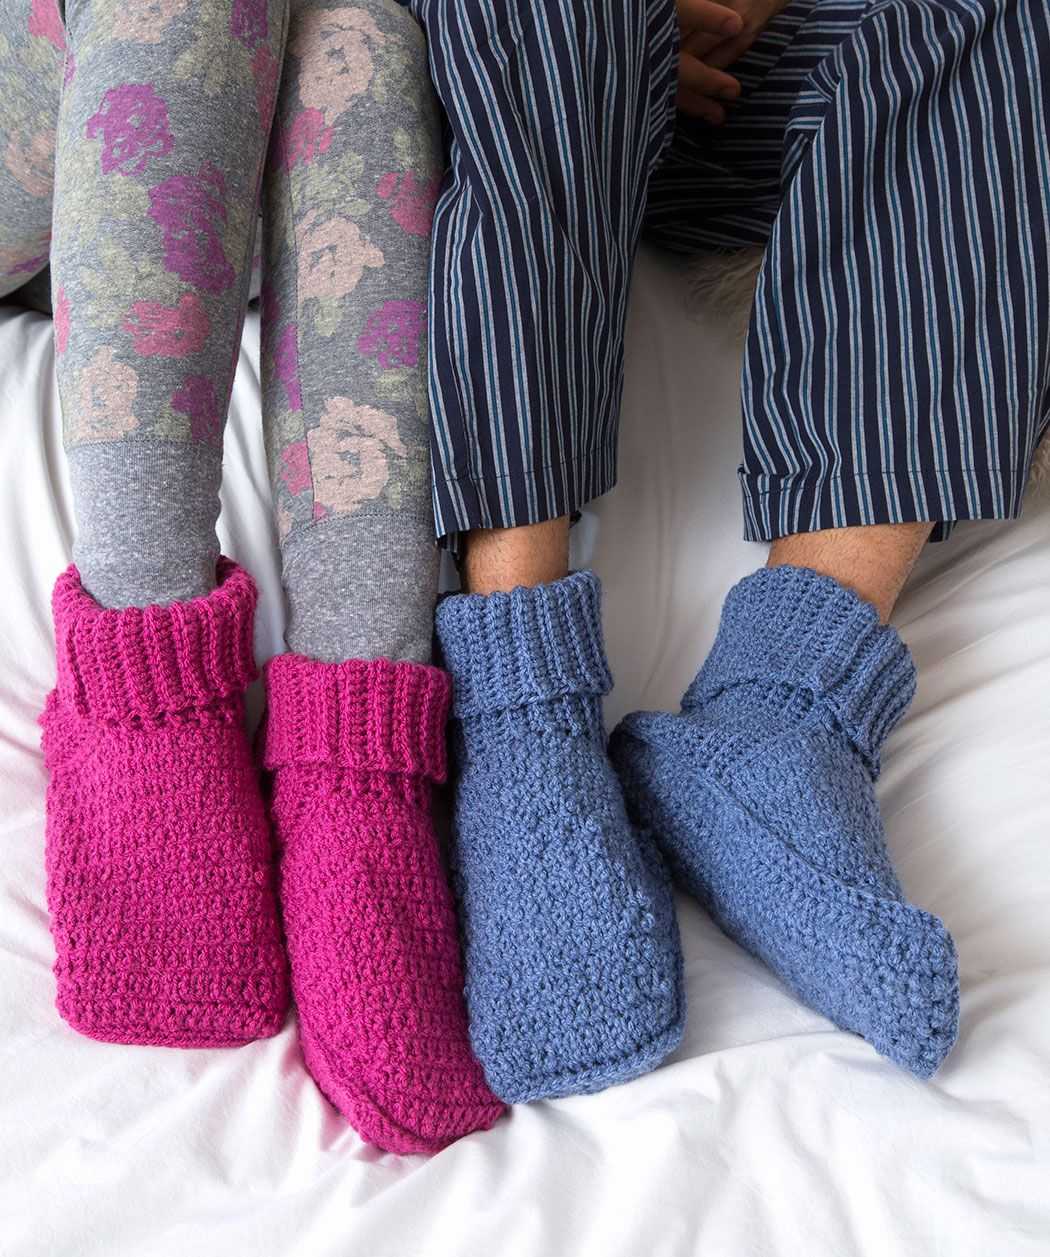 His & Her Slippers Free Crochet Pattern in Red Heart Yarns (UK terms ...